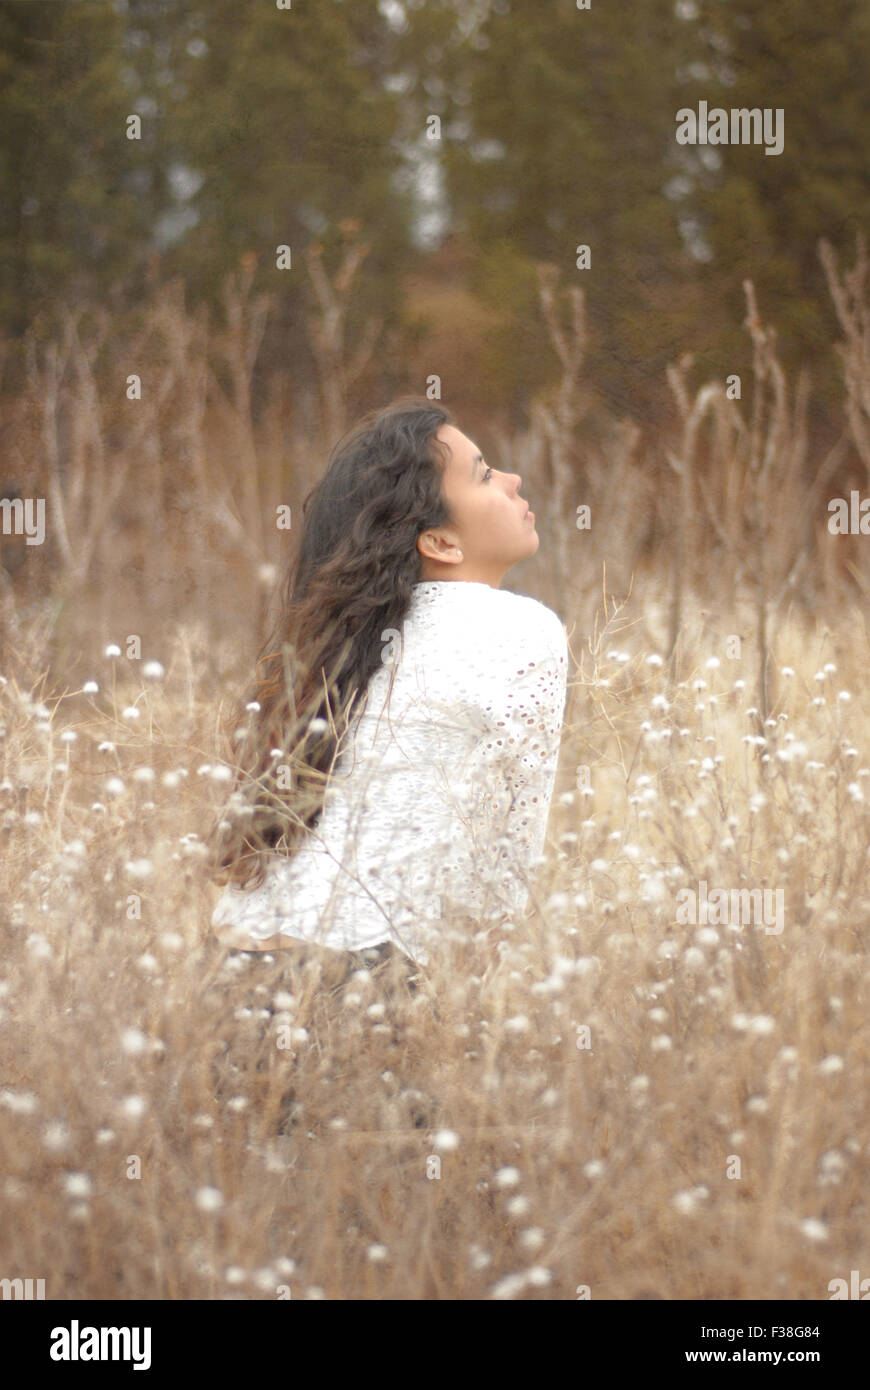 Girl with a delicate shirt sitting in the orange grass dreamy light - Stock Image